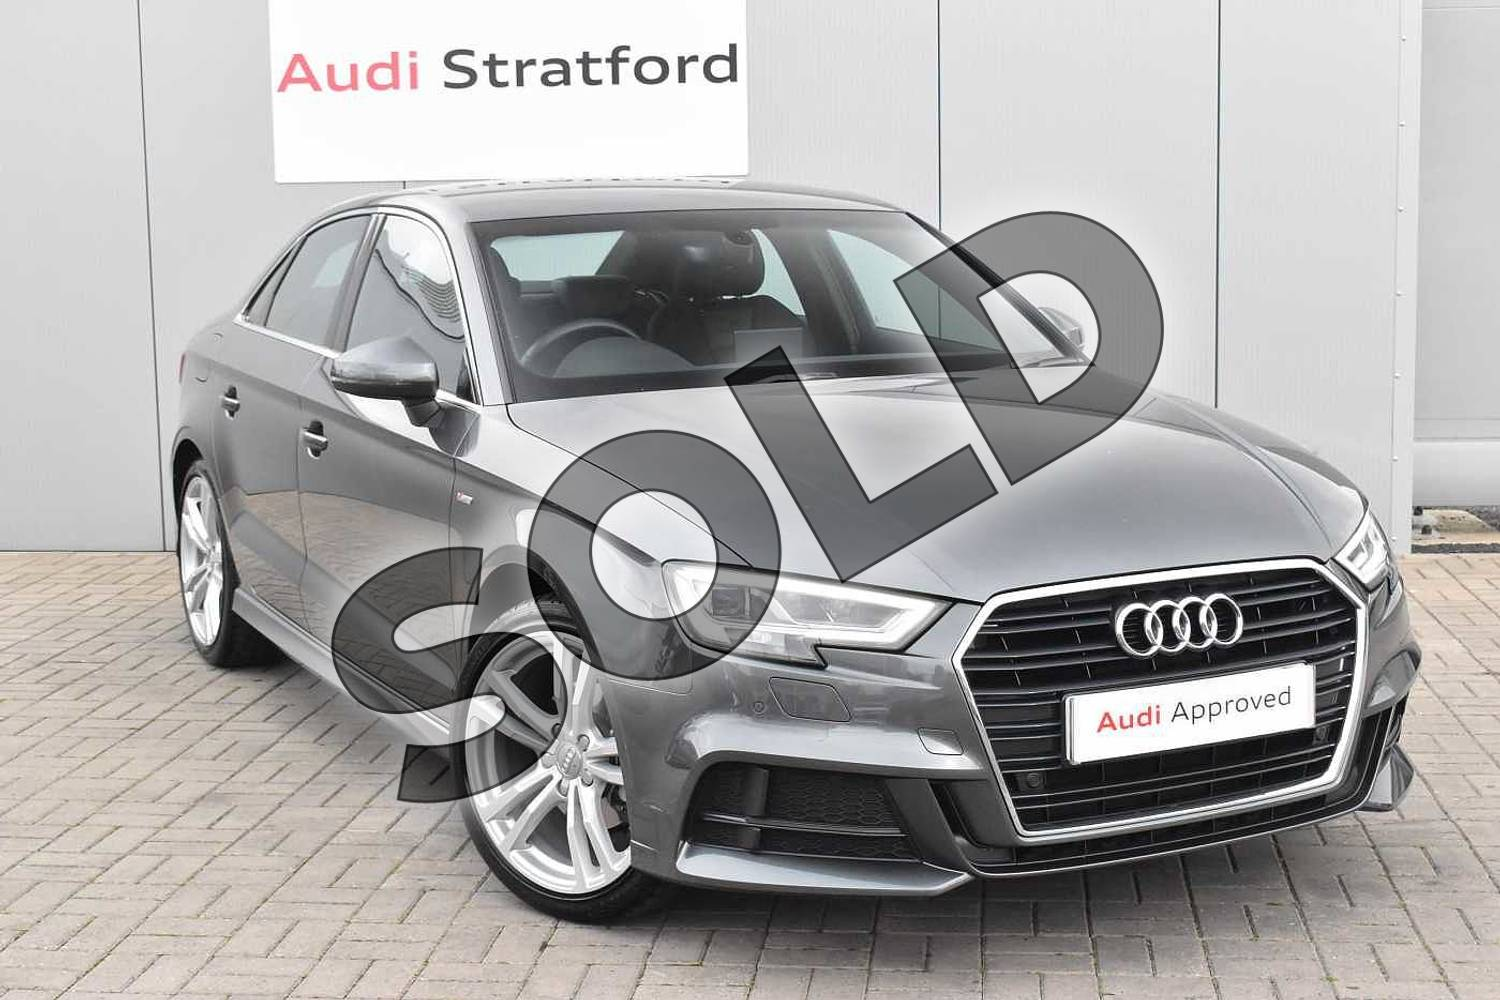 2016 Audi A3 Saloon 1.4 TFSI S Line 4dr in Daytona Grey Pearlescent at Stratford Audi